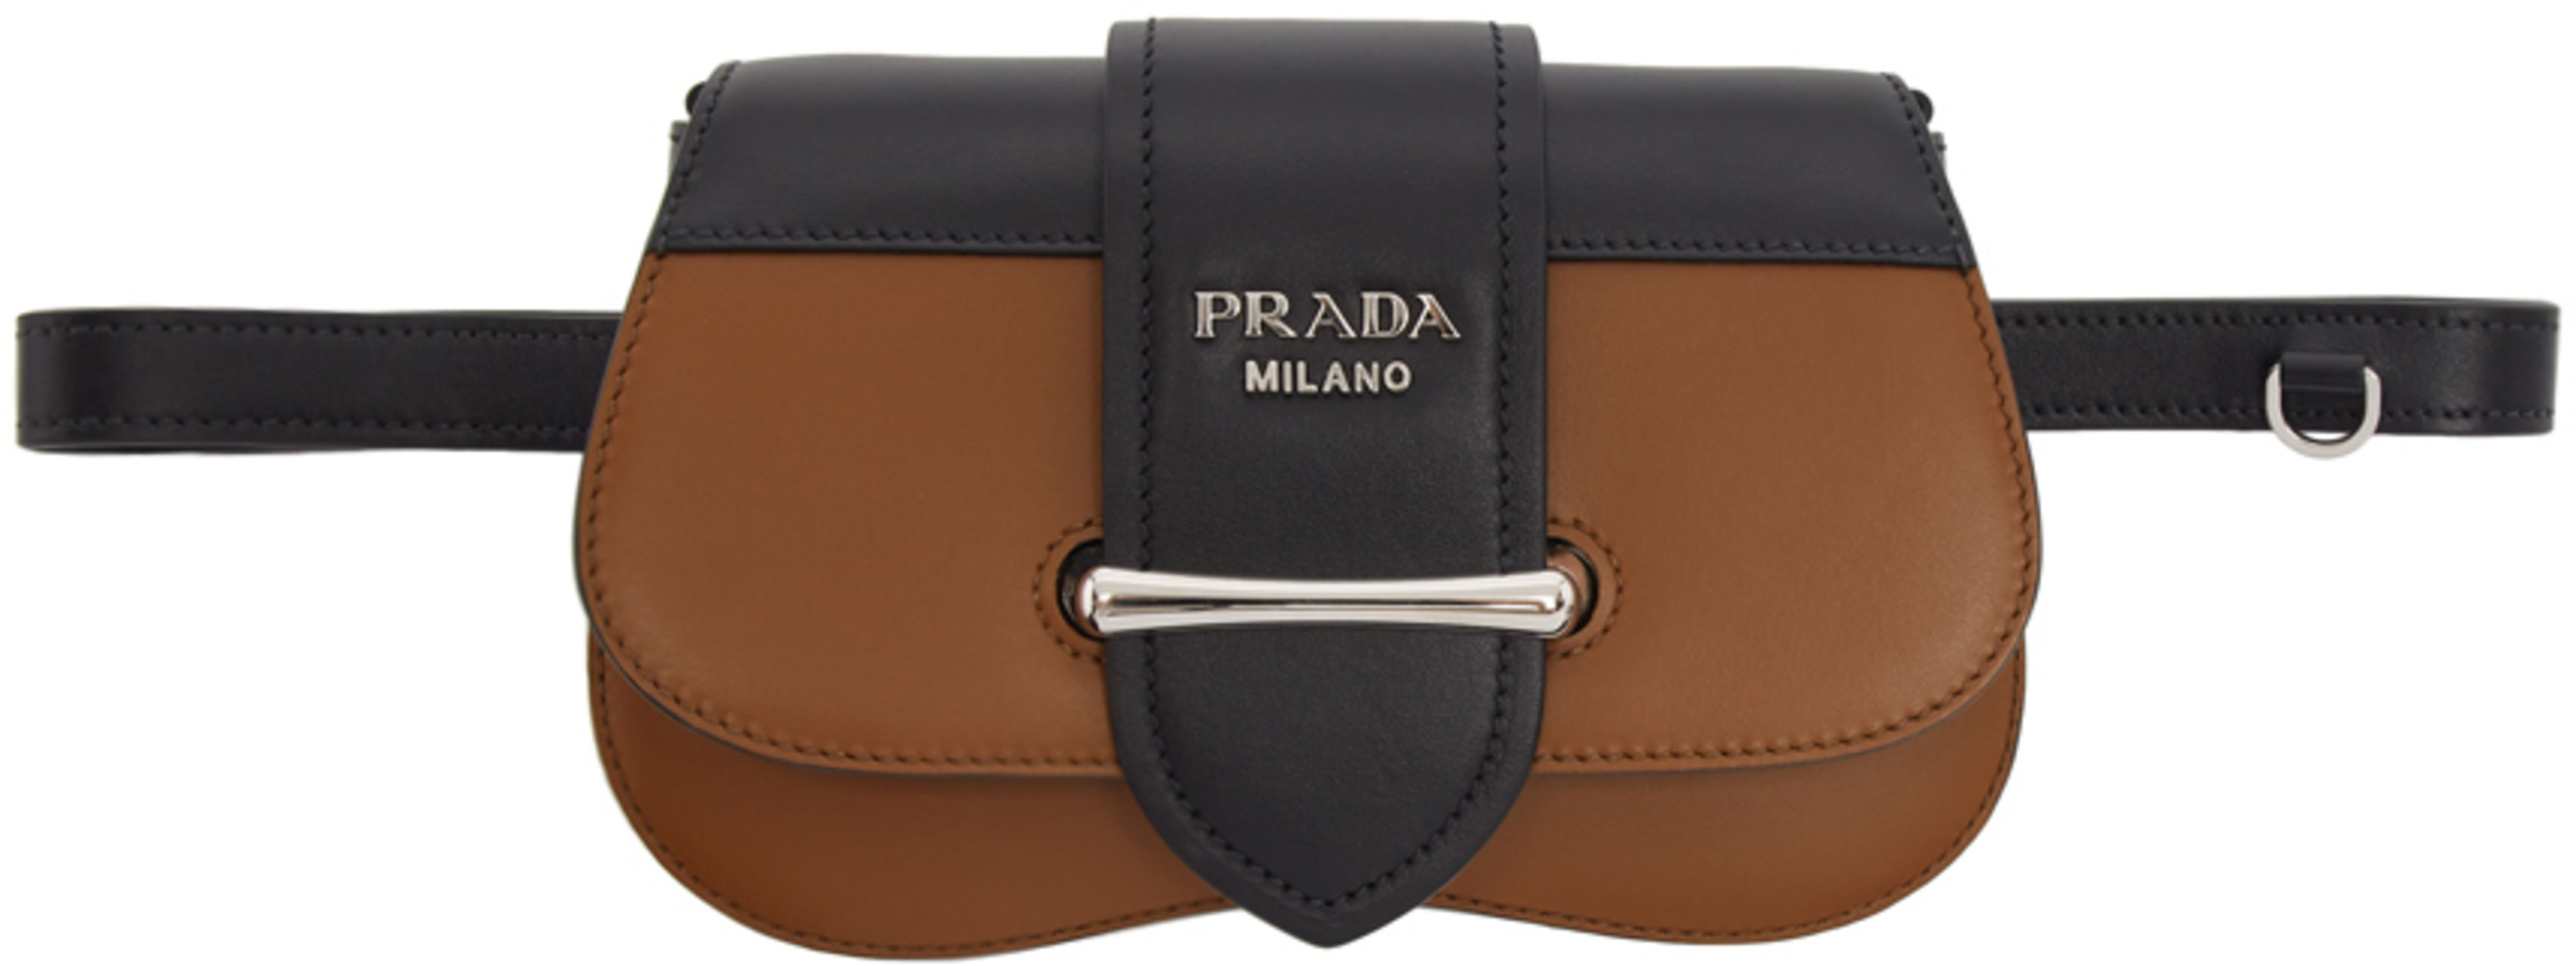 9dba3f6c7449d0 Prada bags for Women | SSENSE